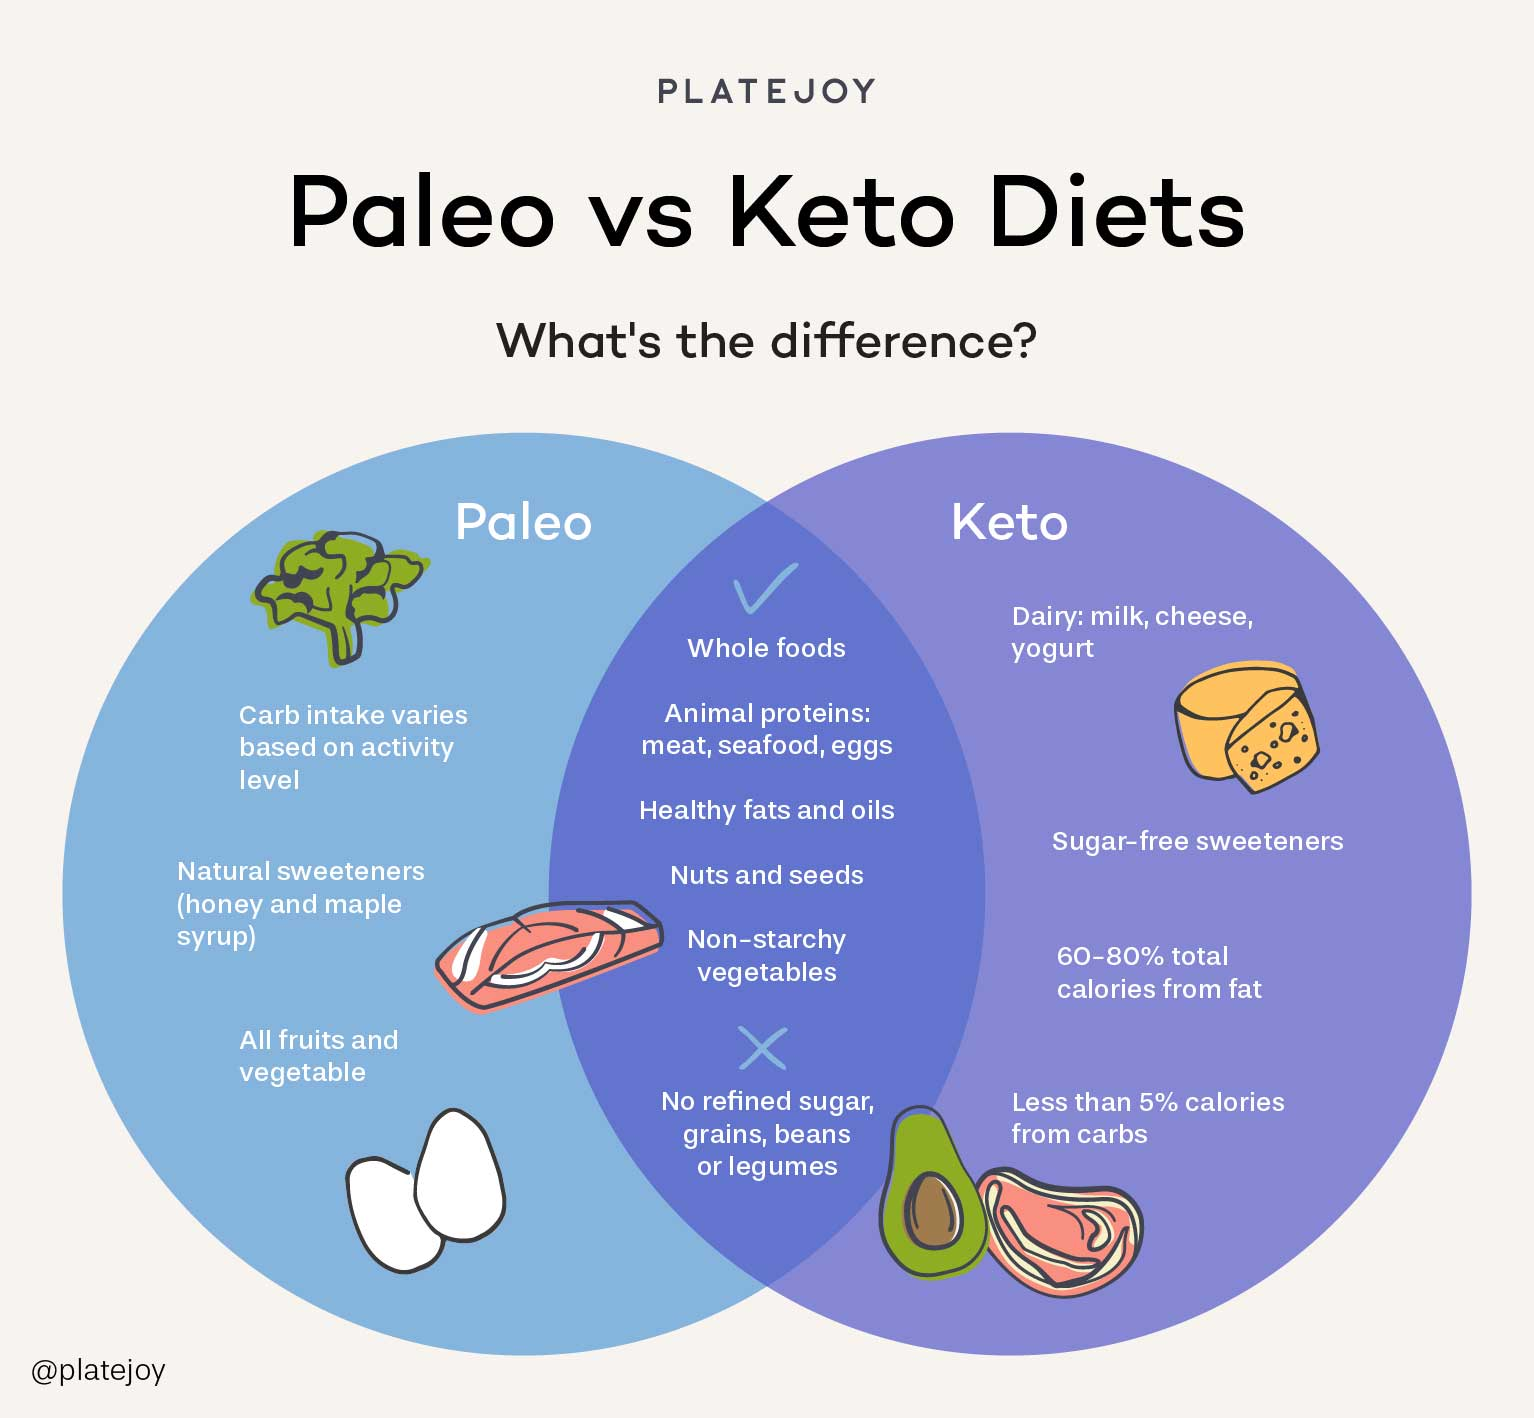 Infographic showing a venn diagram comparing the Paleo vs keto diets and what you can eat on each diet.